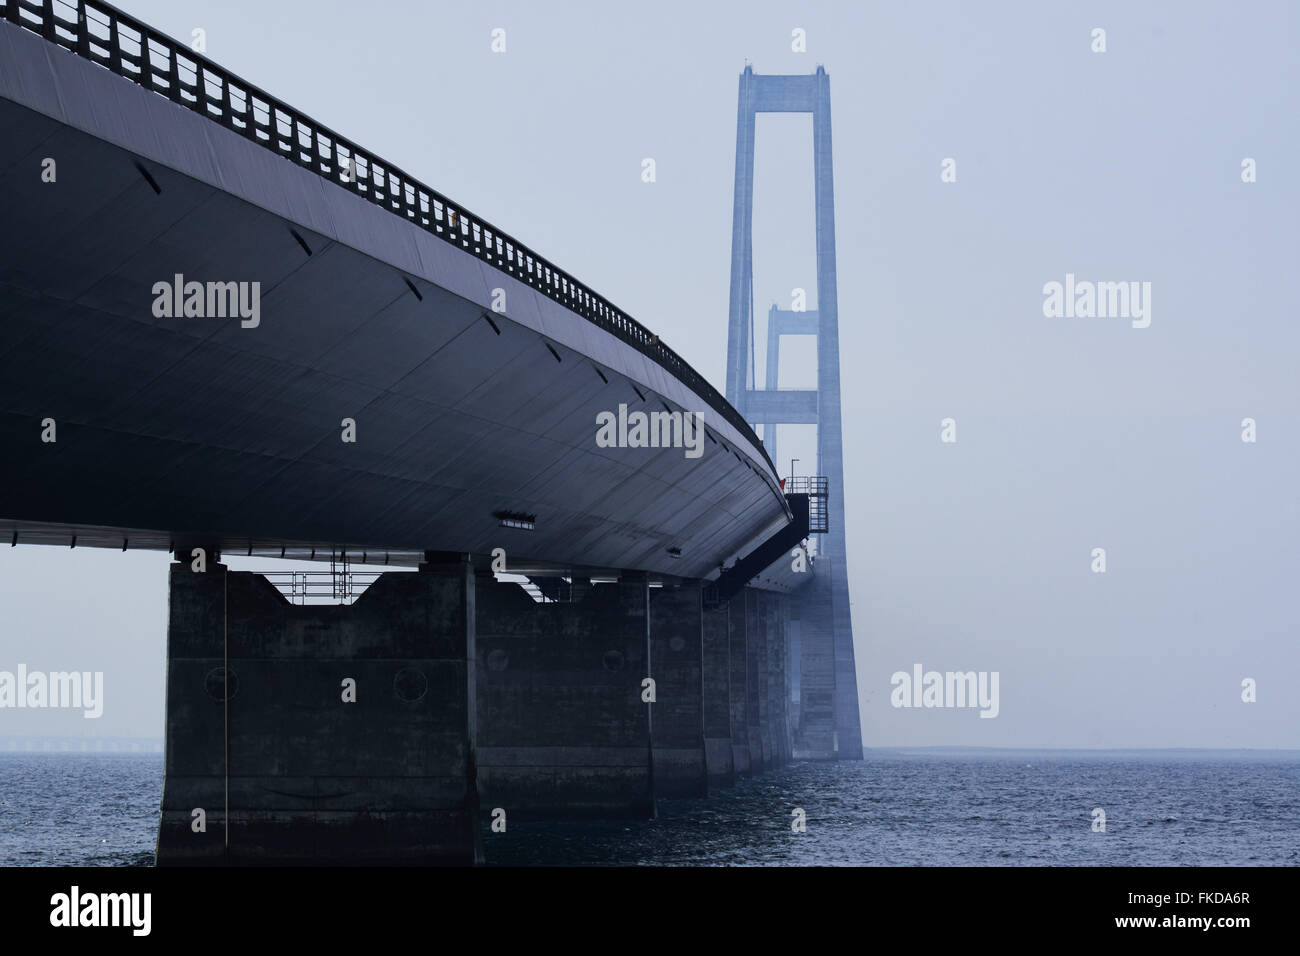 A look a long the north side of the Great belt bridge seen from the Sealand side Stock Photo